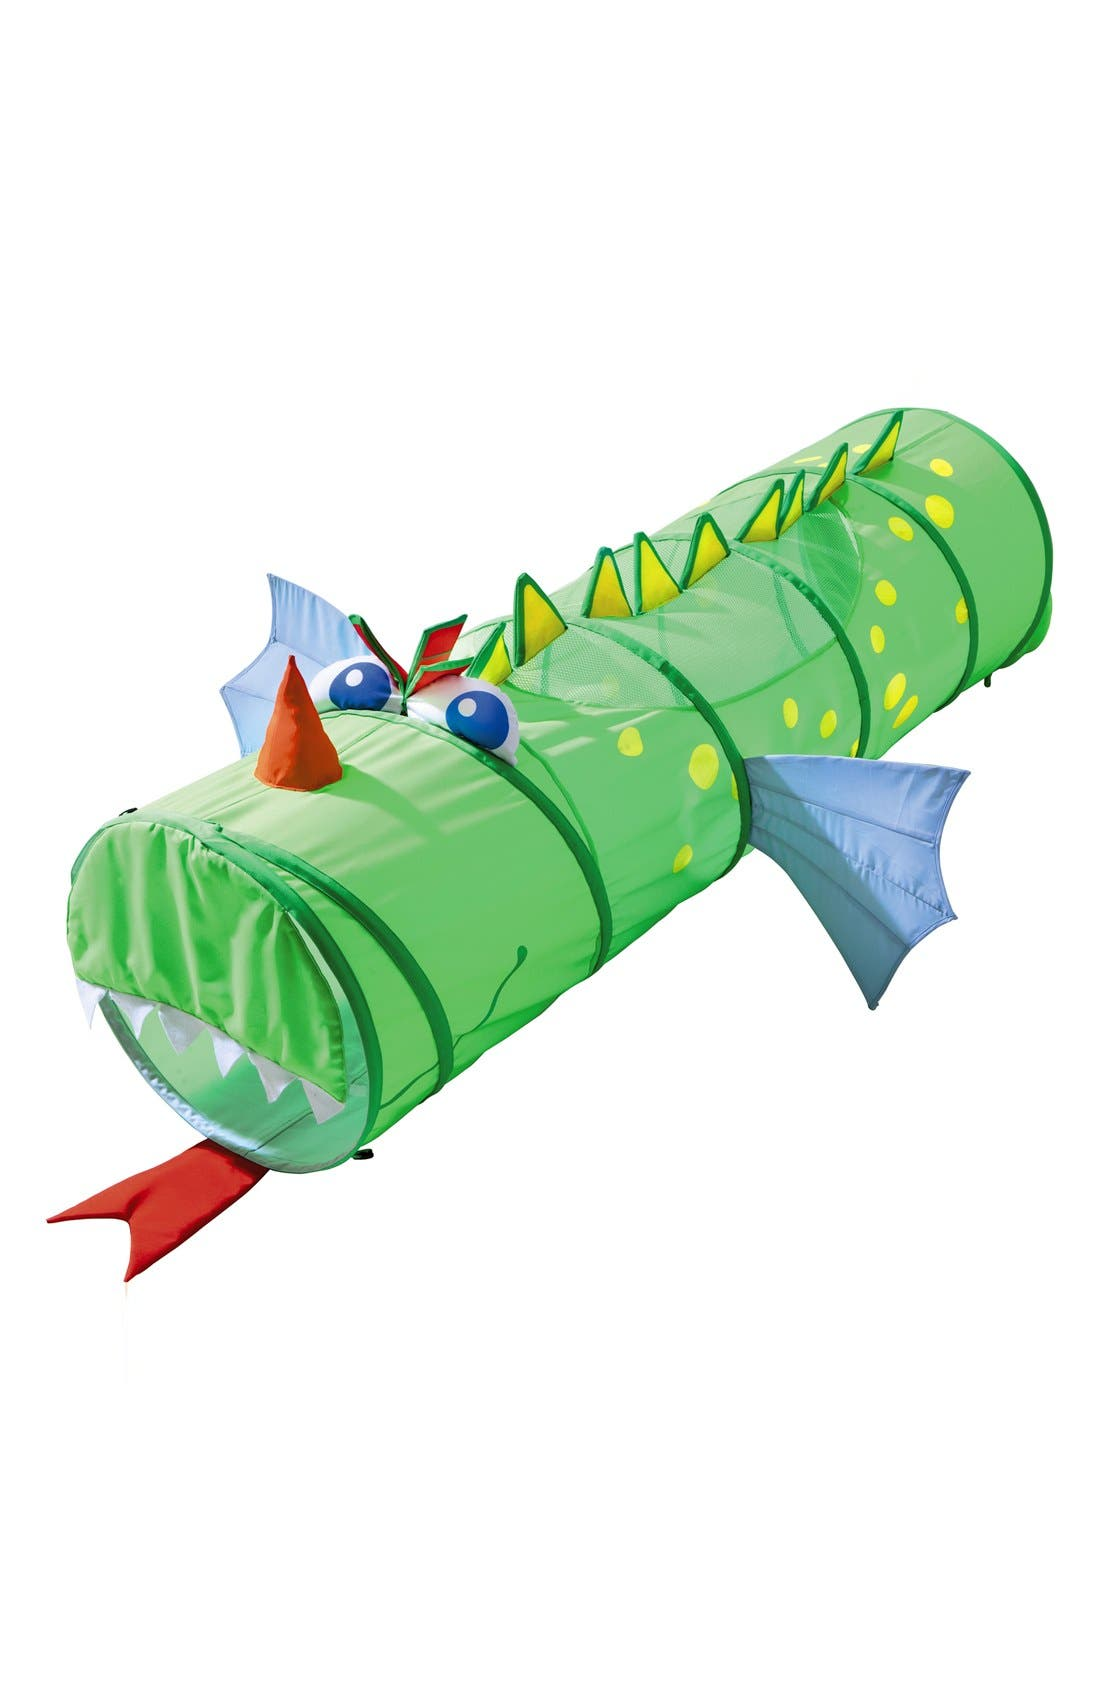 HABA 'Croco Kuno' Dragon Crawling Tunnel